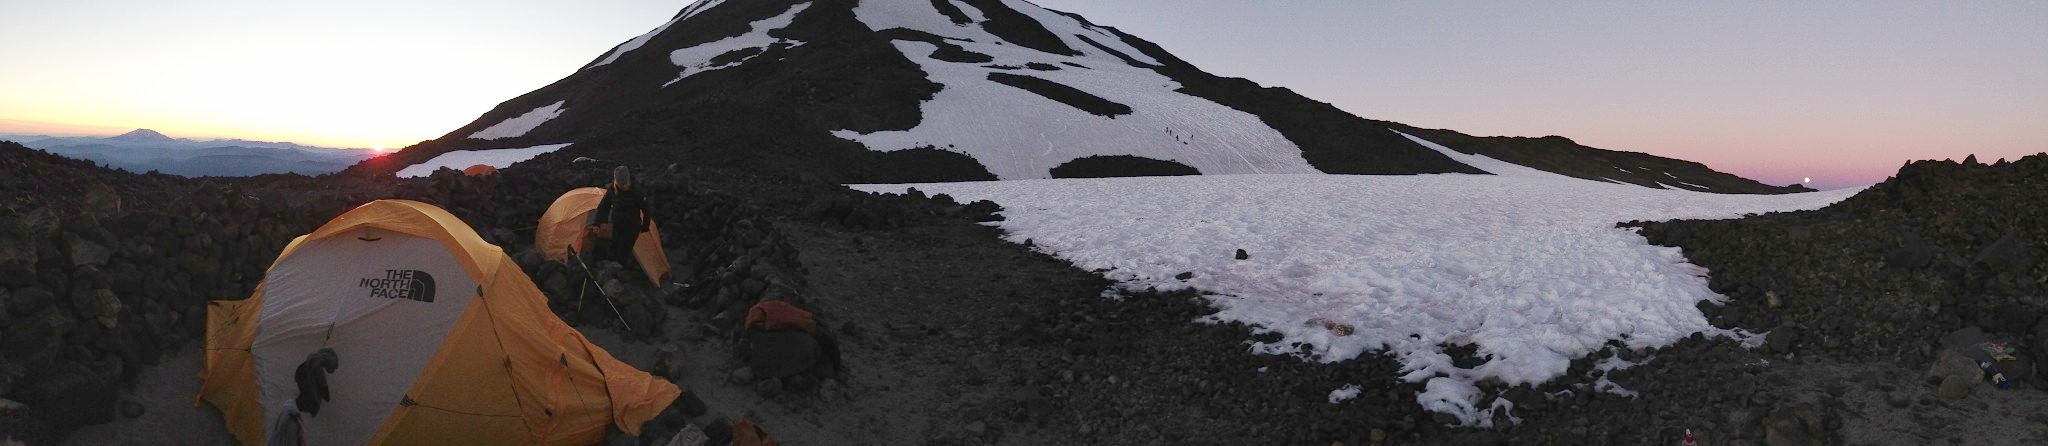 Simultaneous sunset and moonrise at basecamp 2013